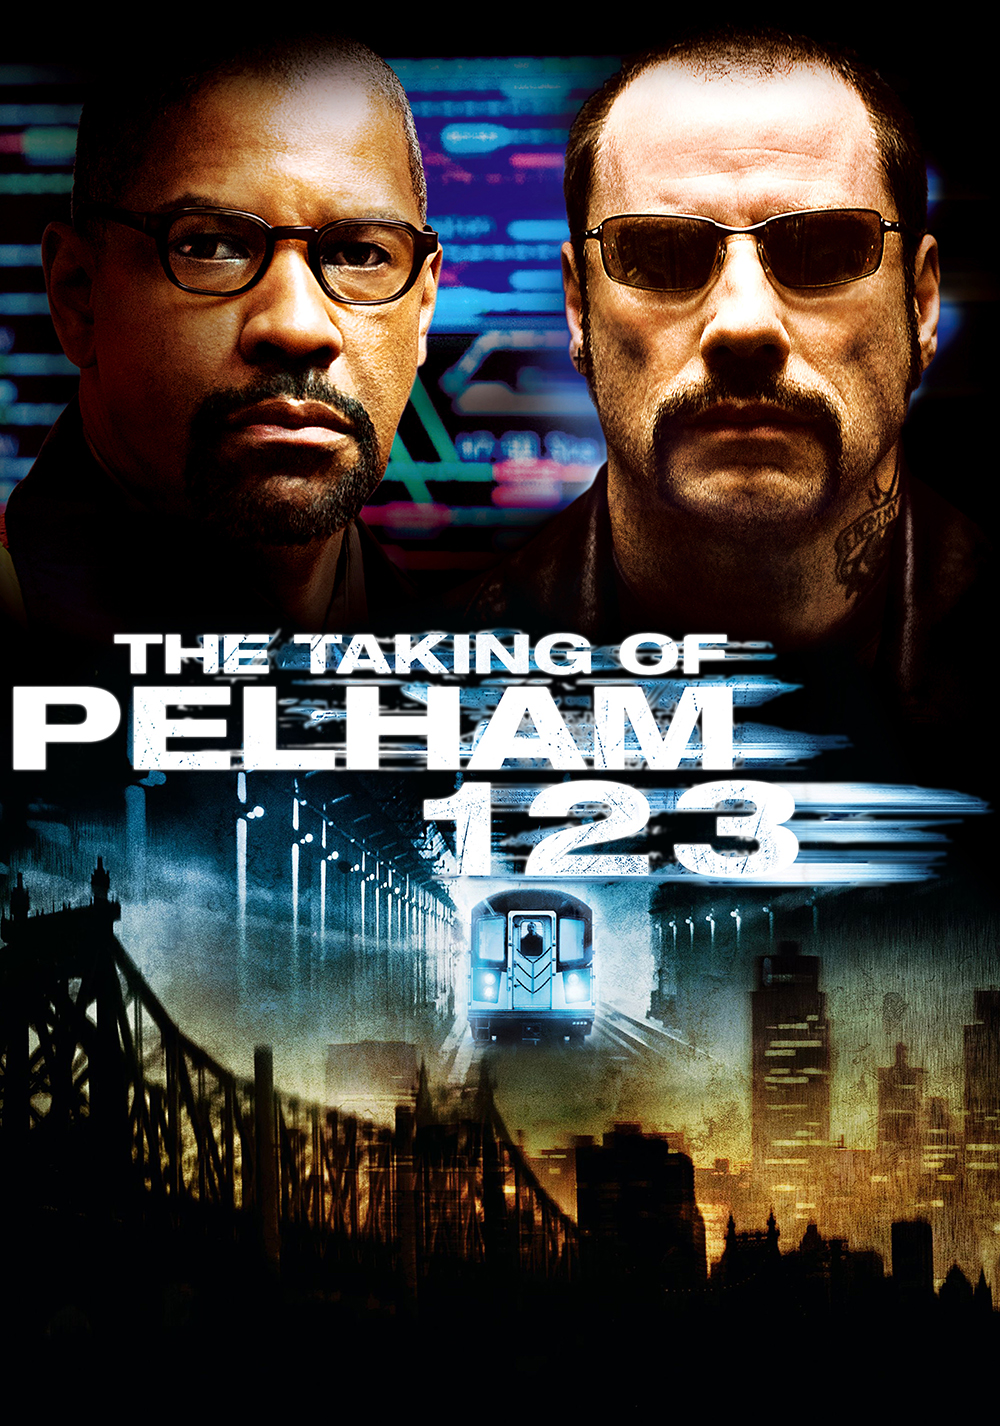 the movie symposium the taking of pelham 123